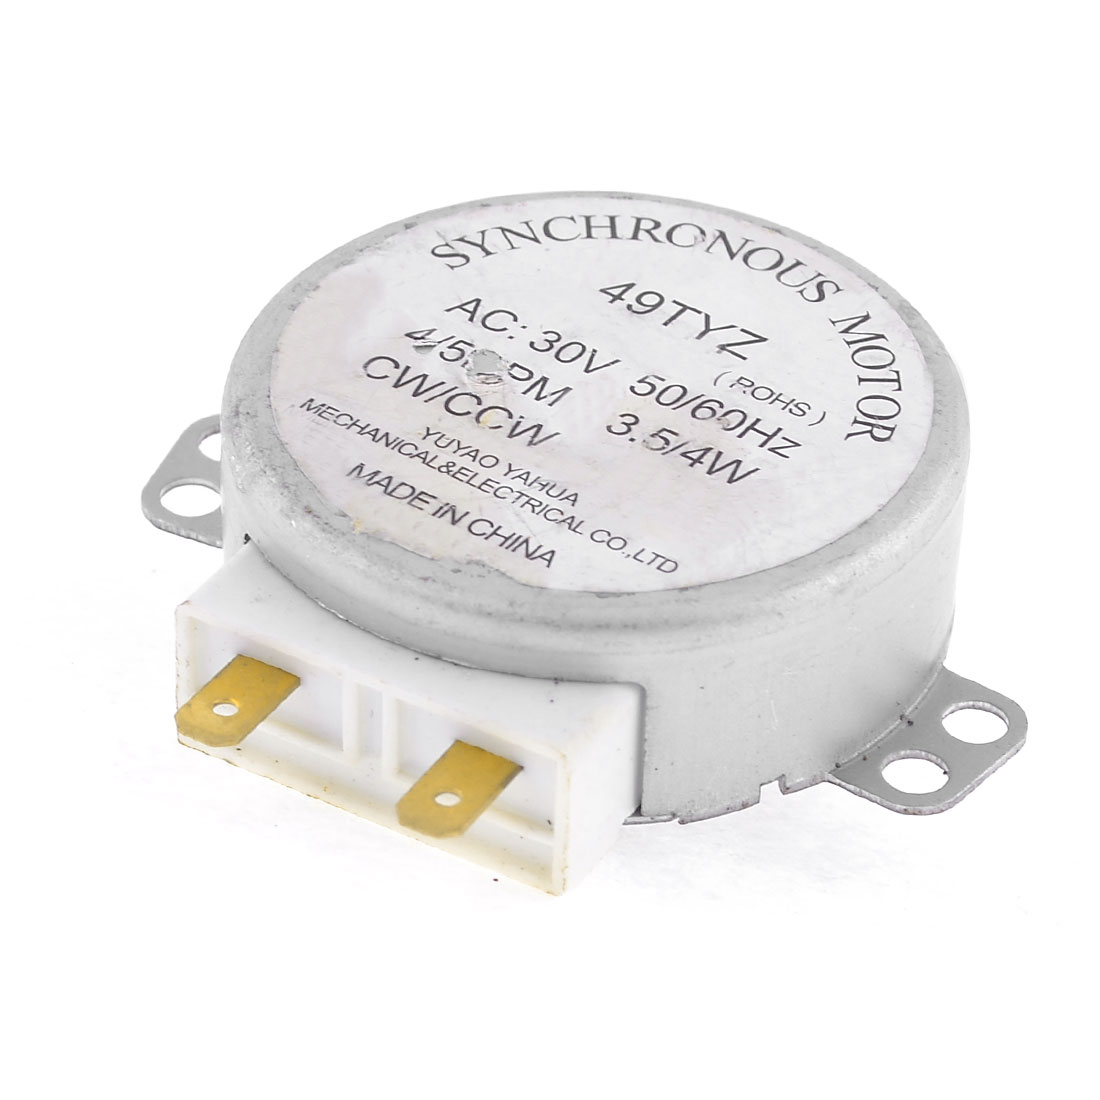 Microwave Oven Turntable Synchronous Motor CW/CCW 3.5/4W 4/5RPM AC 30V